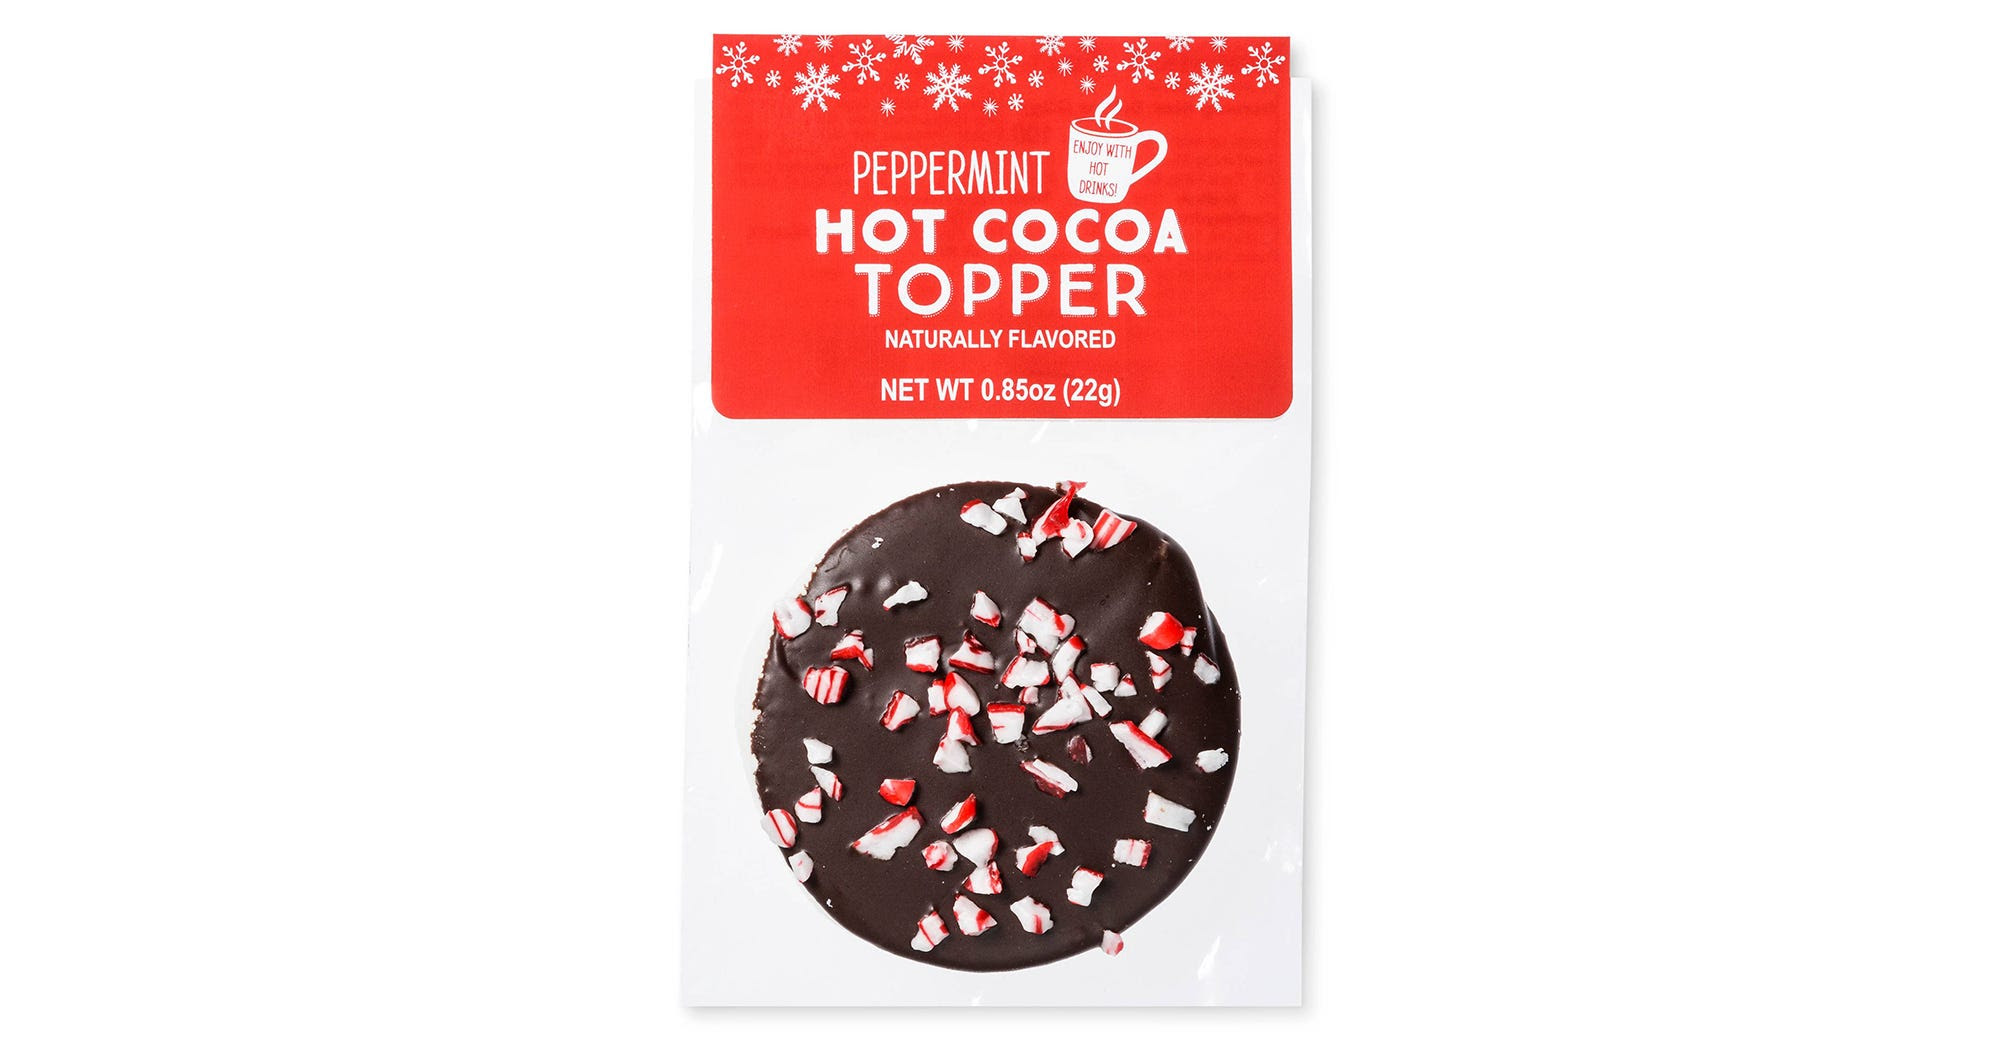 via0.com - Target Exclusive Holiday Food Gifts